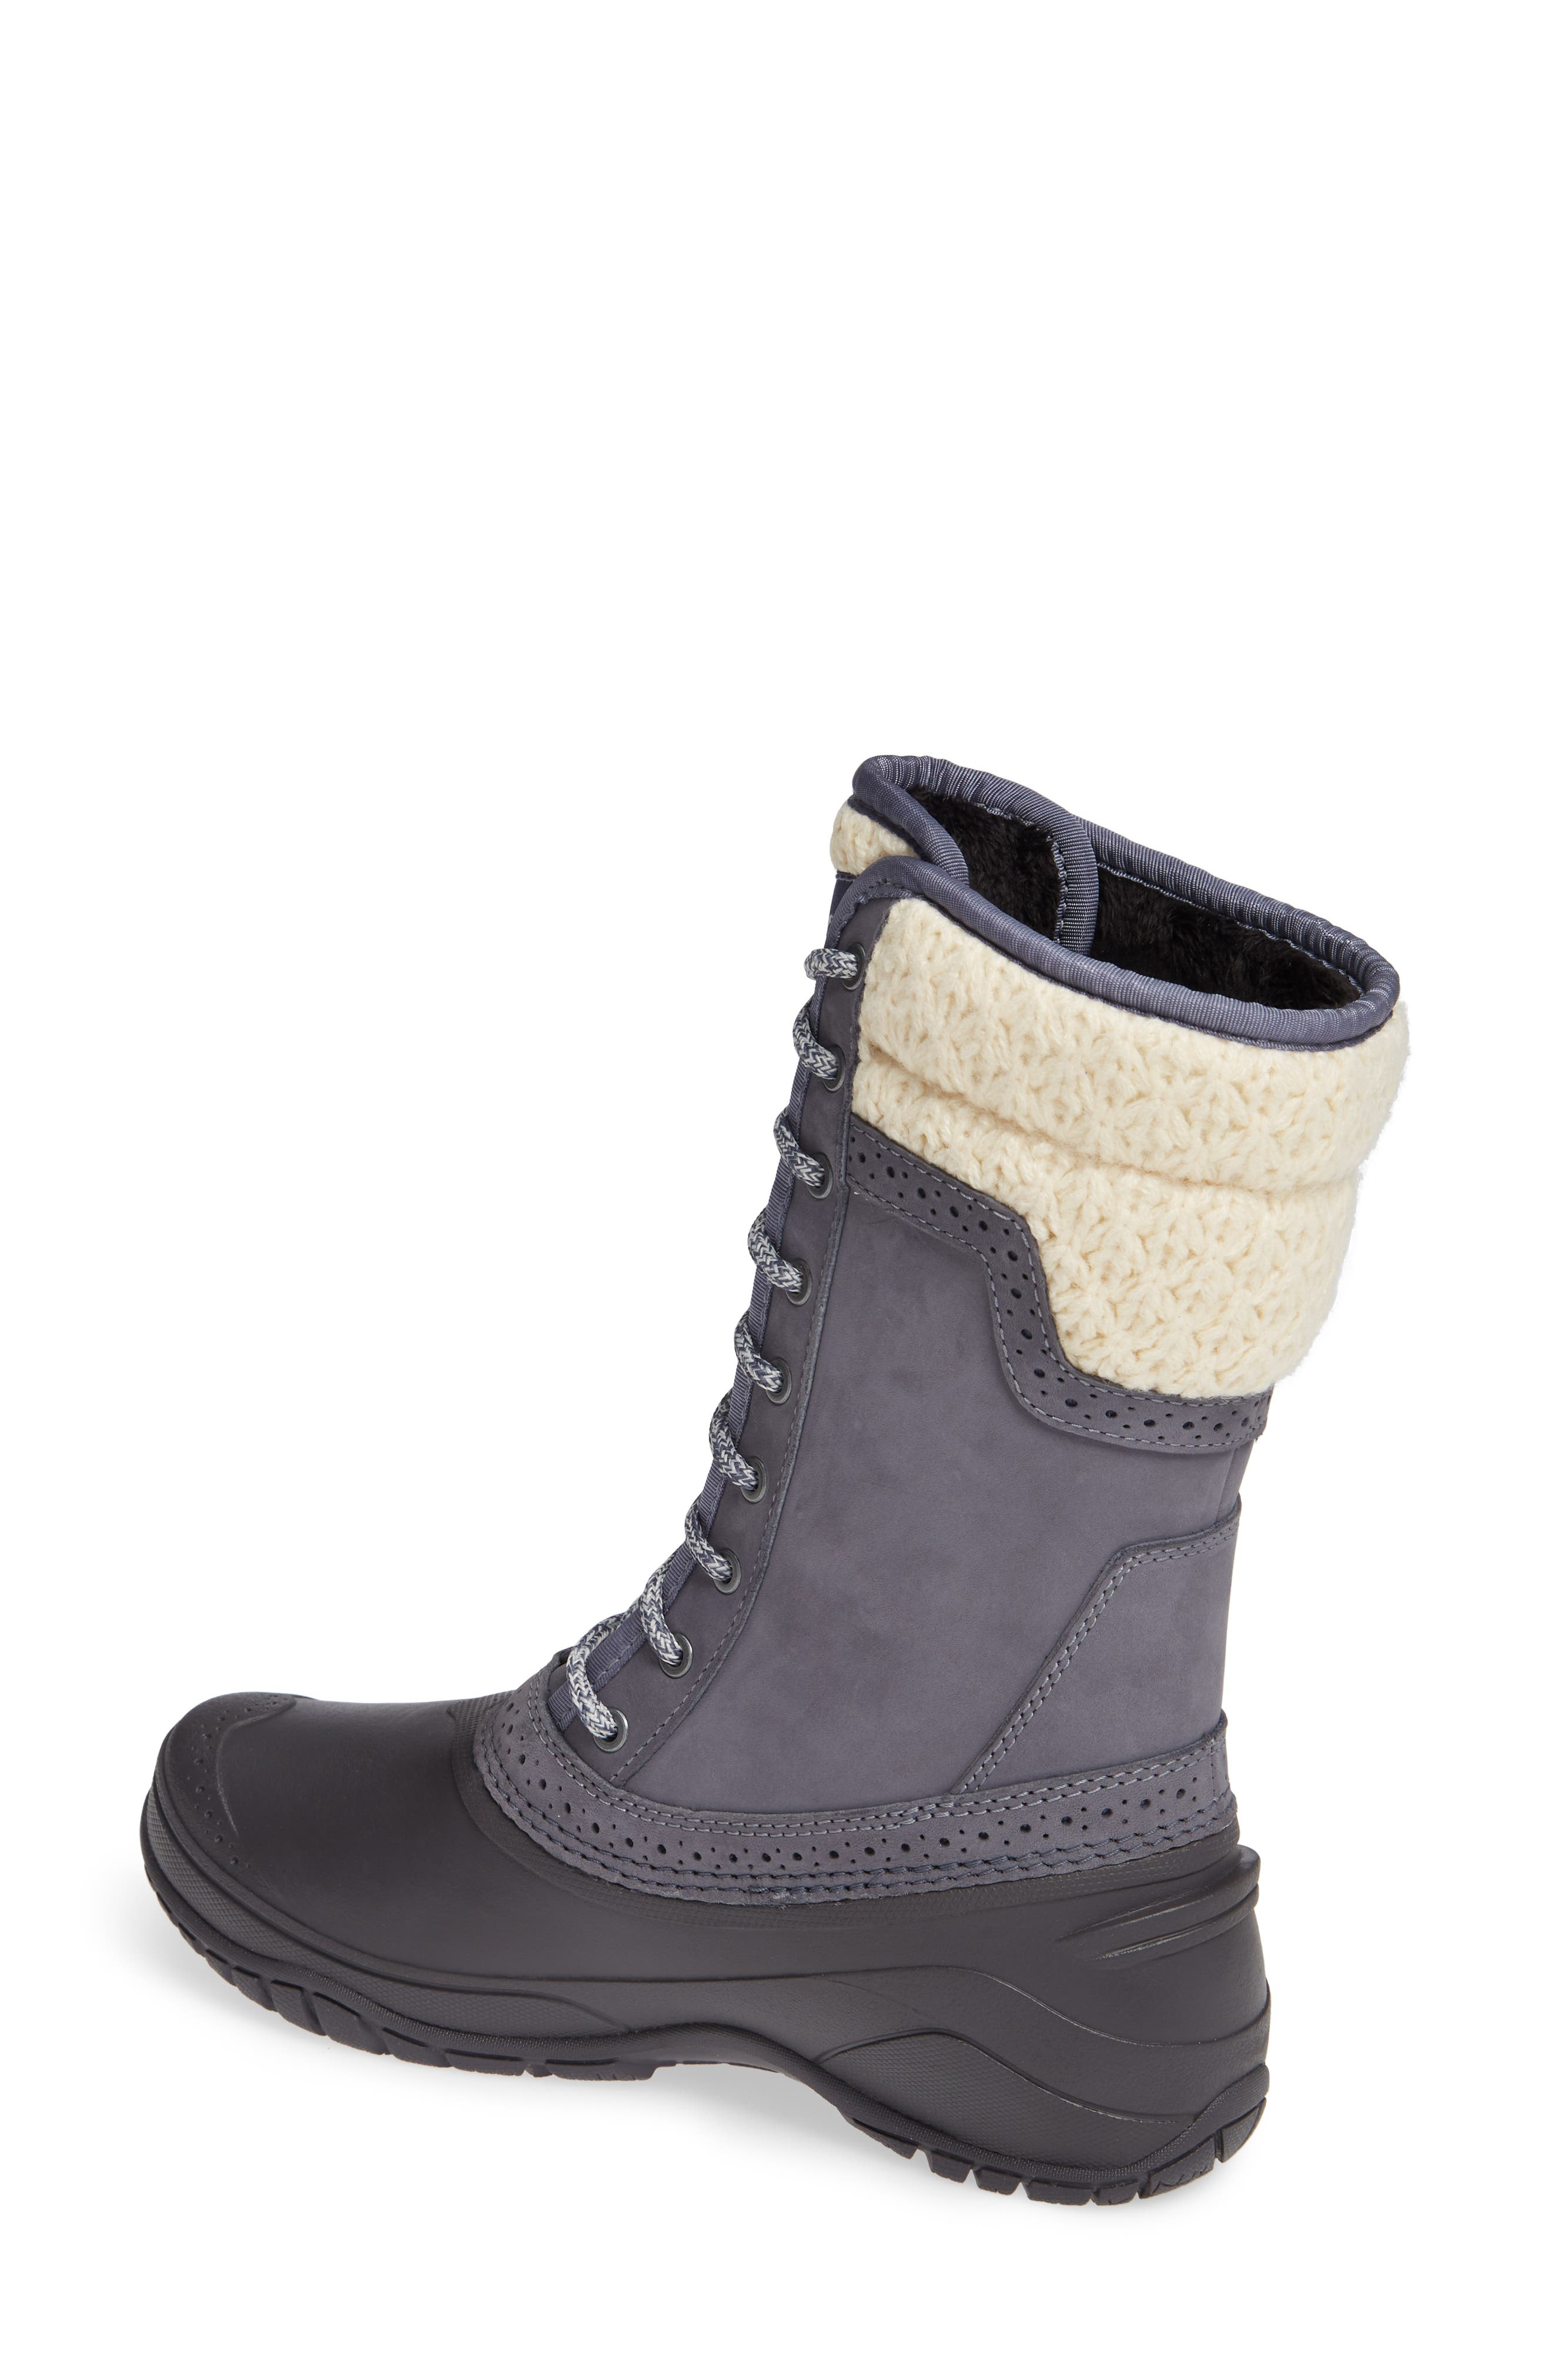 Shellista Waterproof Insulated Snow Boot,                             Alternate thumbnail 2, color,                             Grisaille Grey/ Vintage White